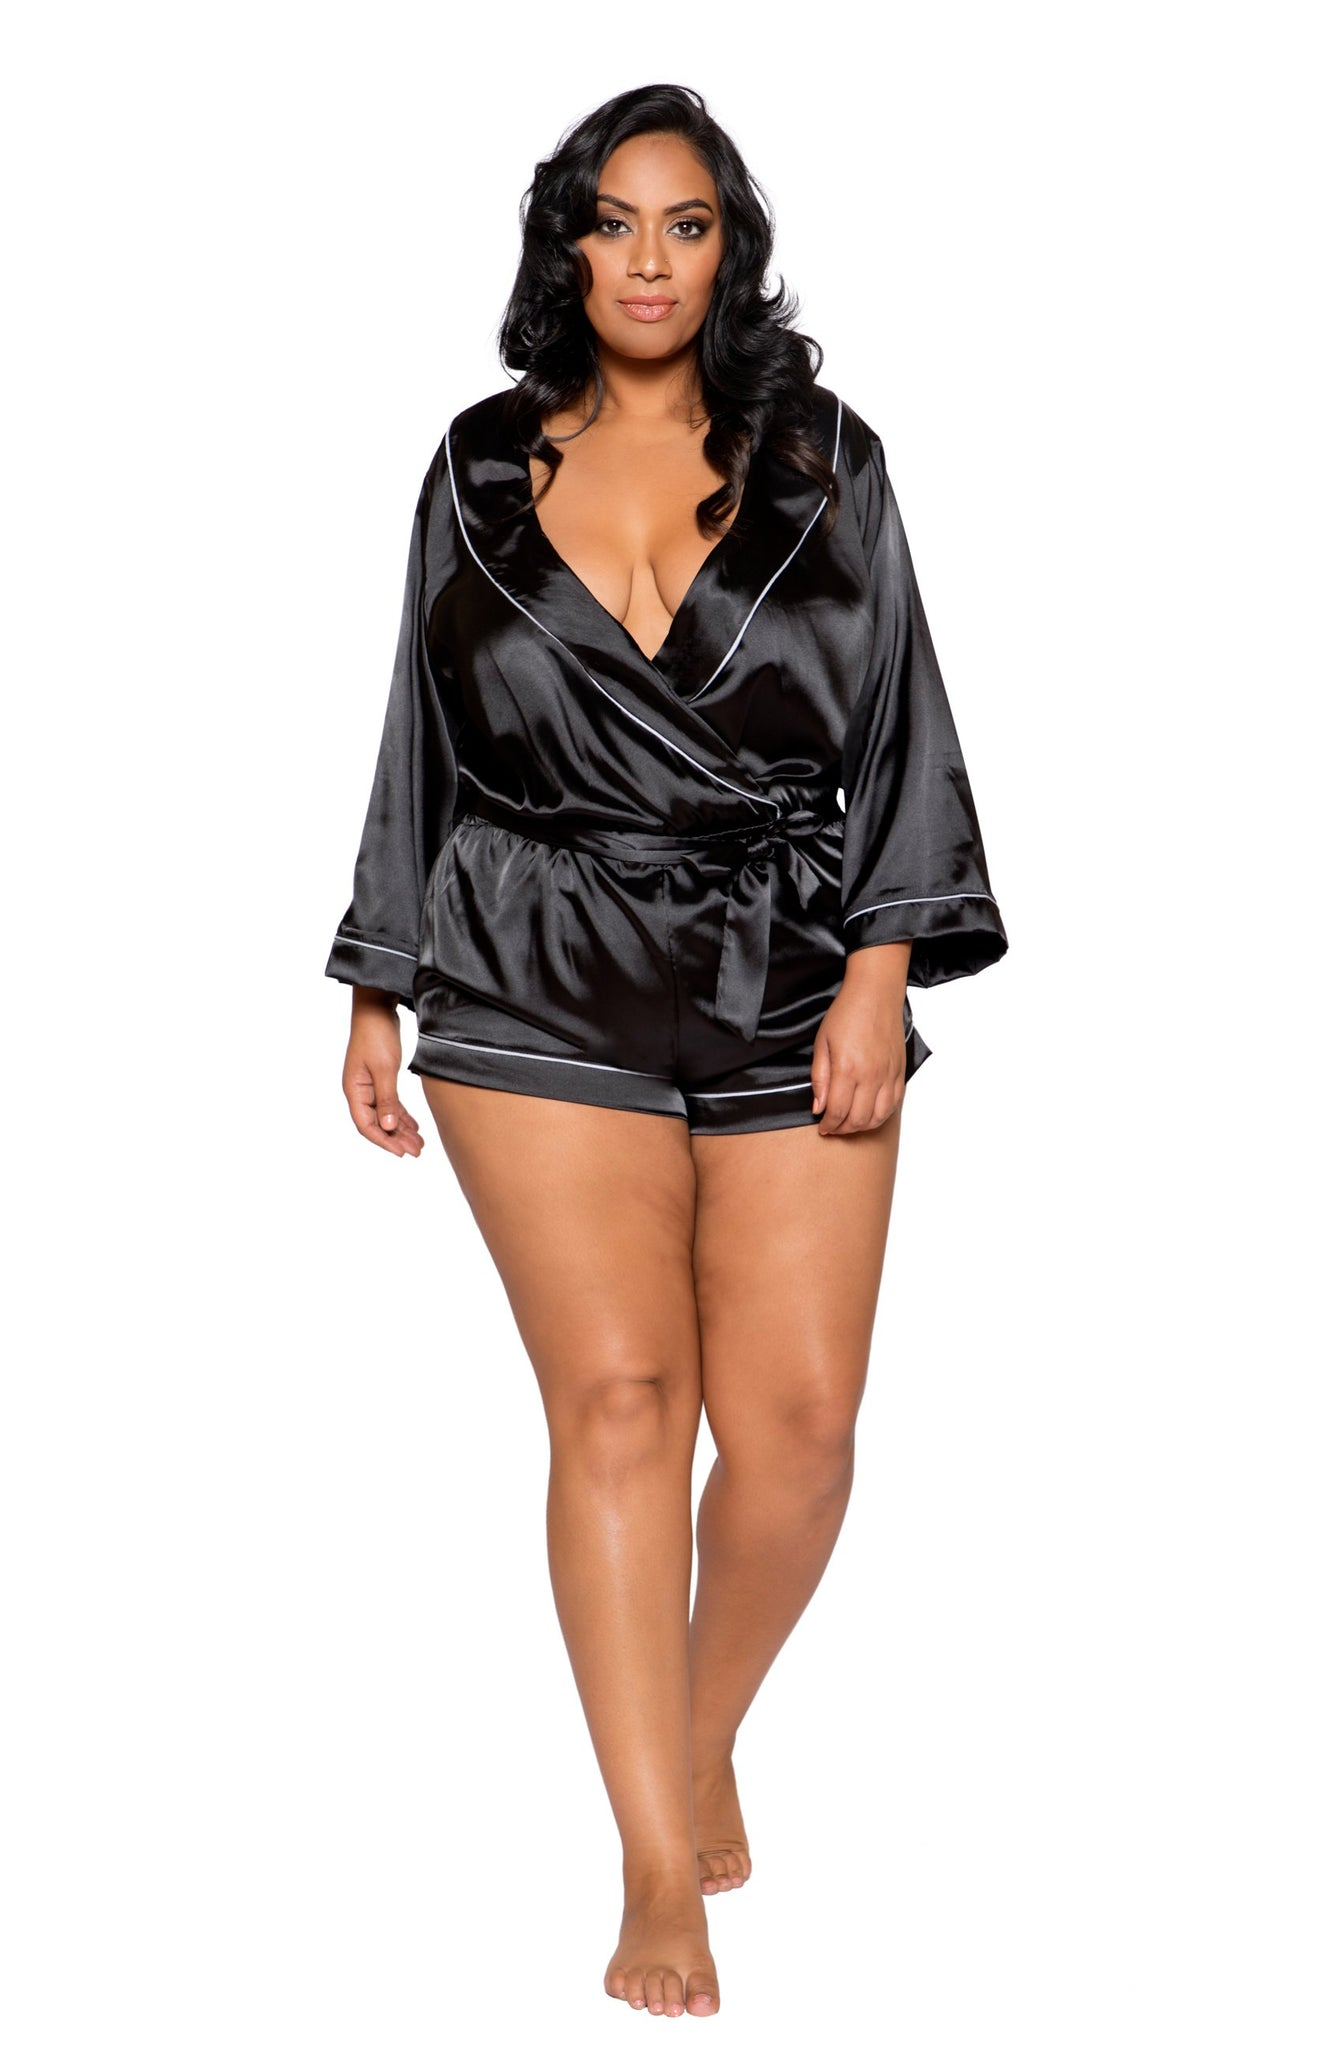 LI283 & LI285 - Chic Cozy Collared Satin Romper with Tie